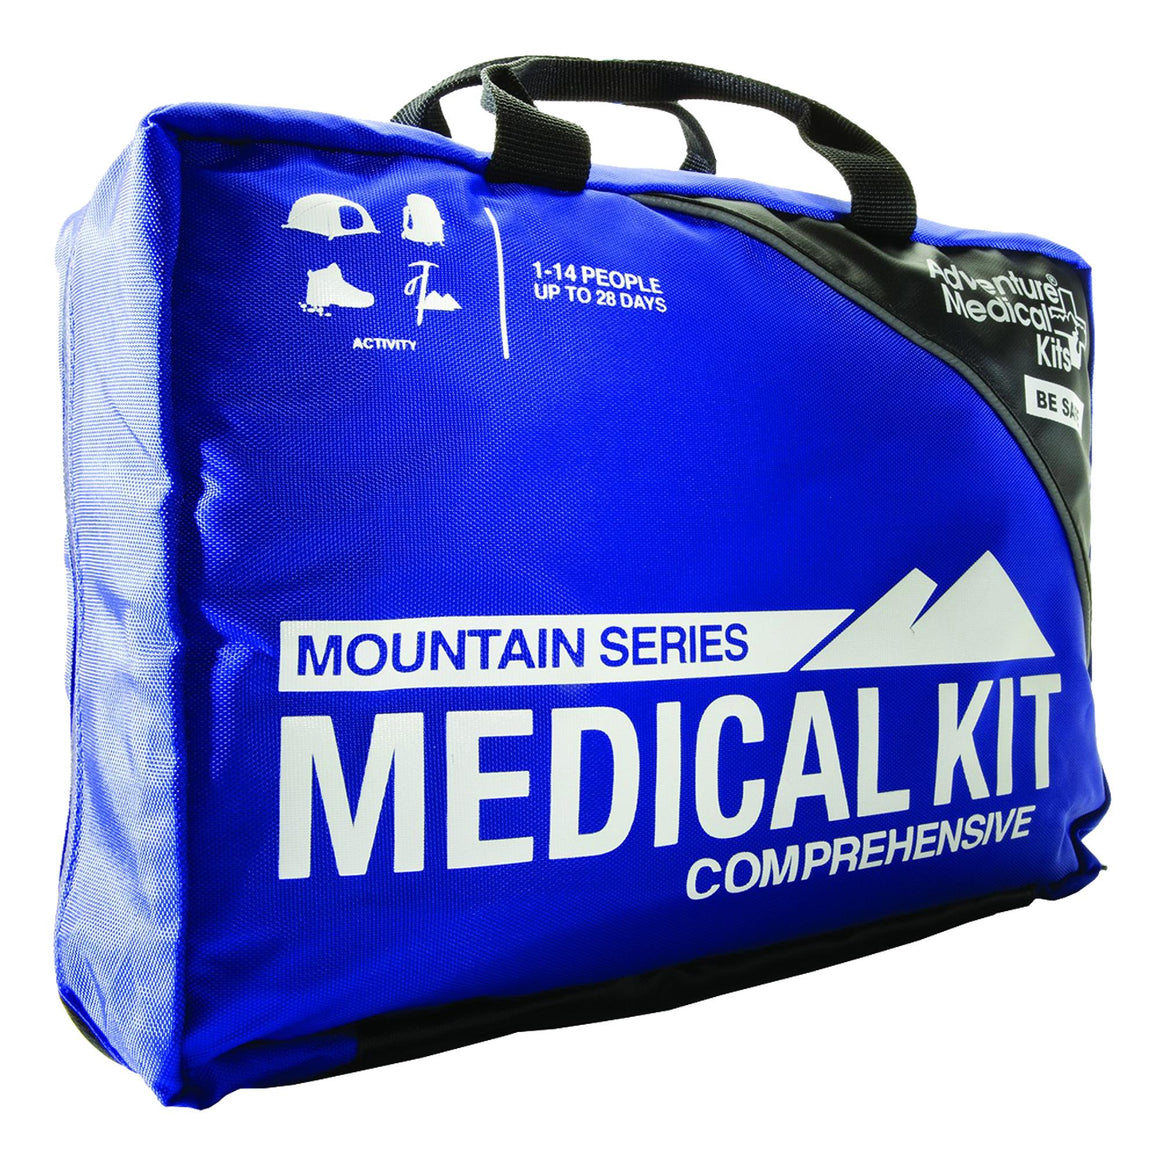 Mountain Series Medical Kit - Comprehensive Easy Care